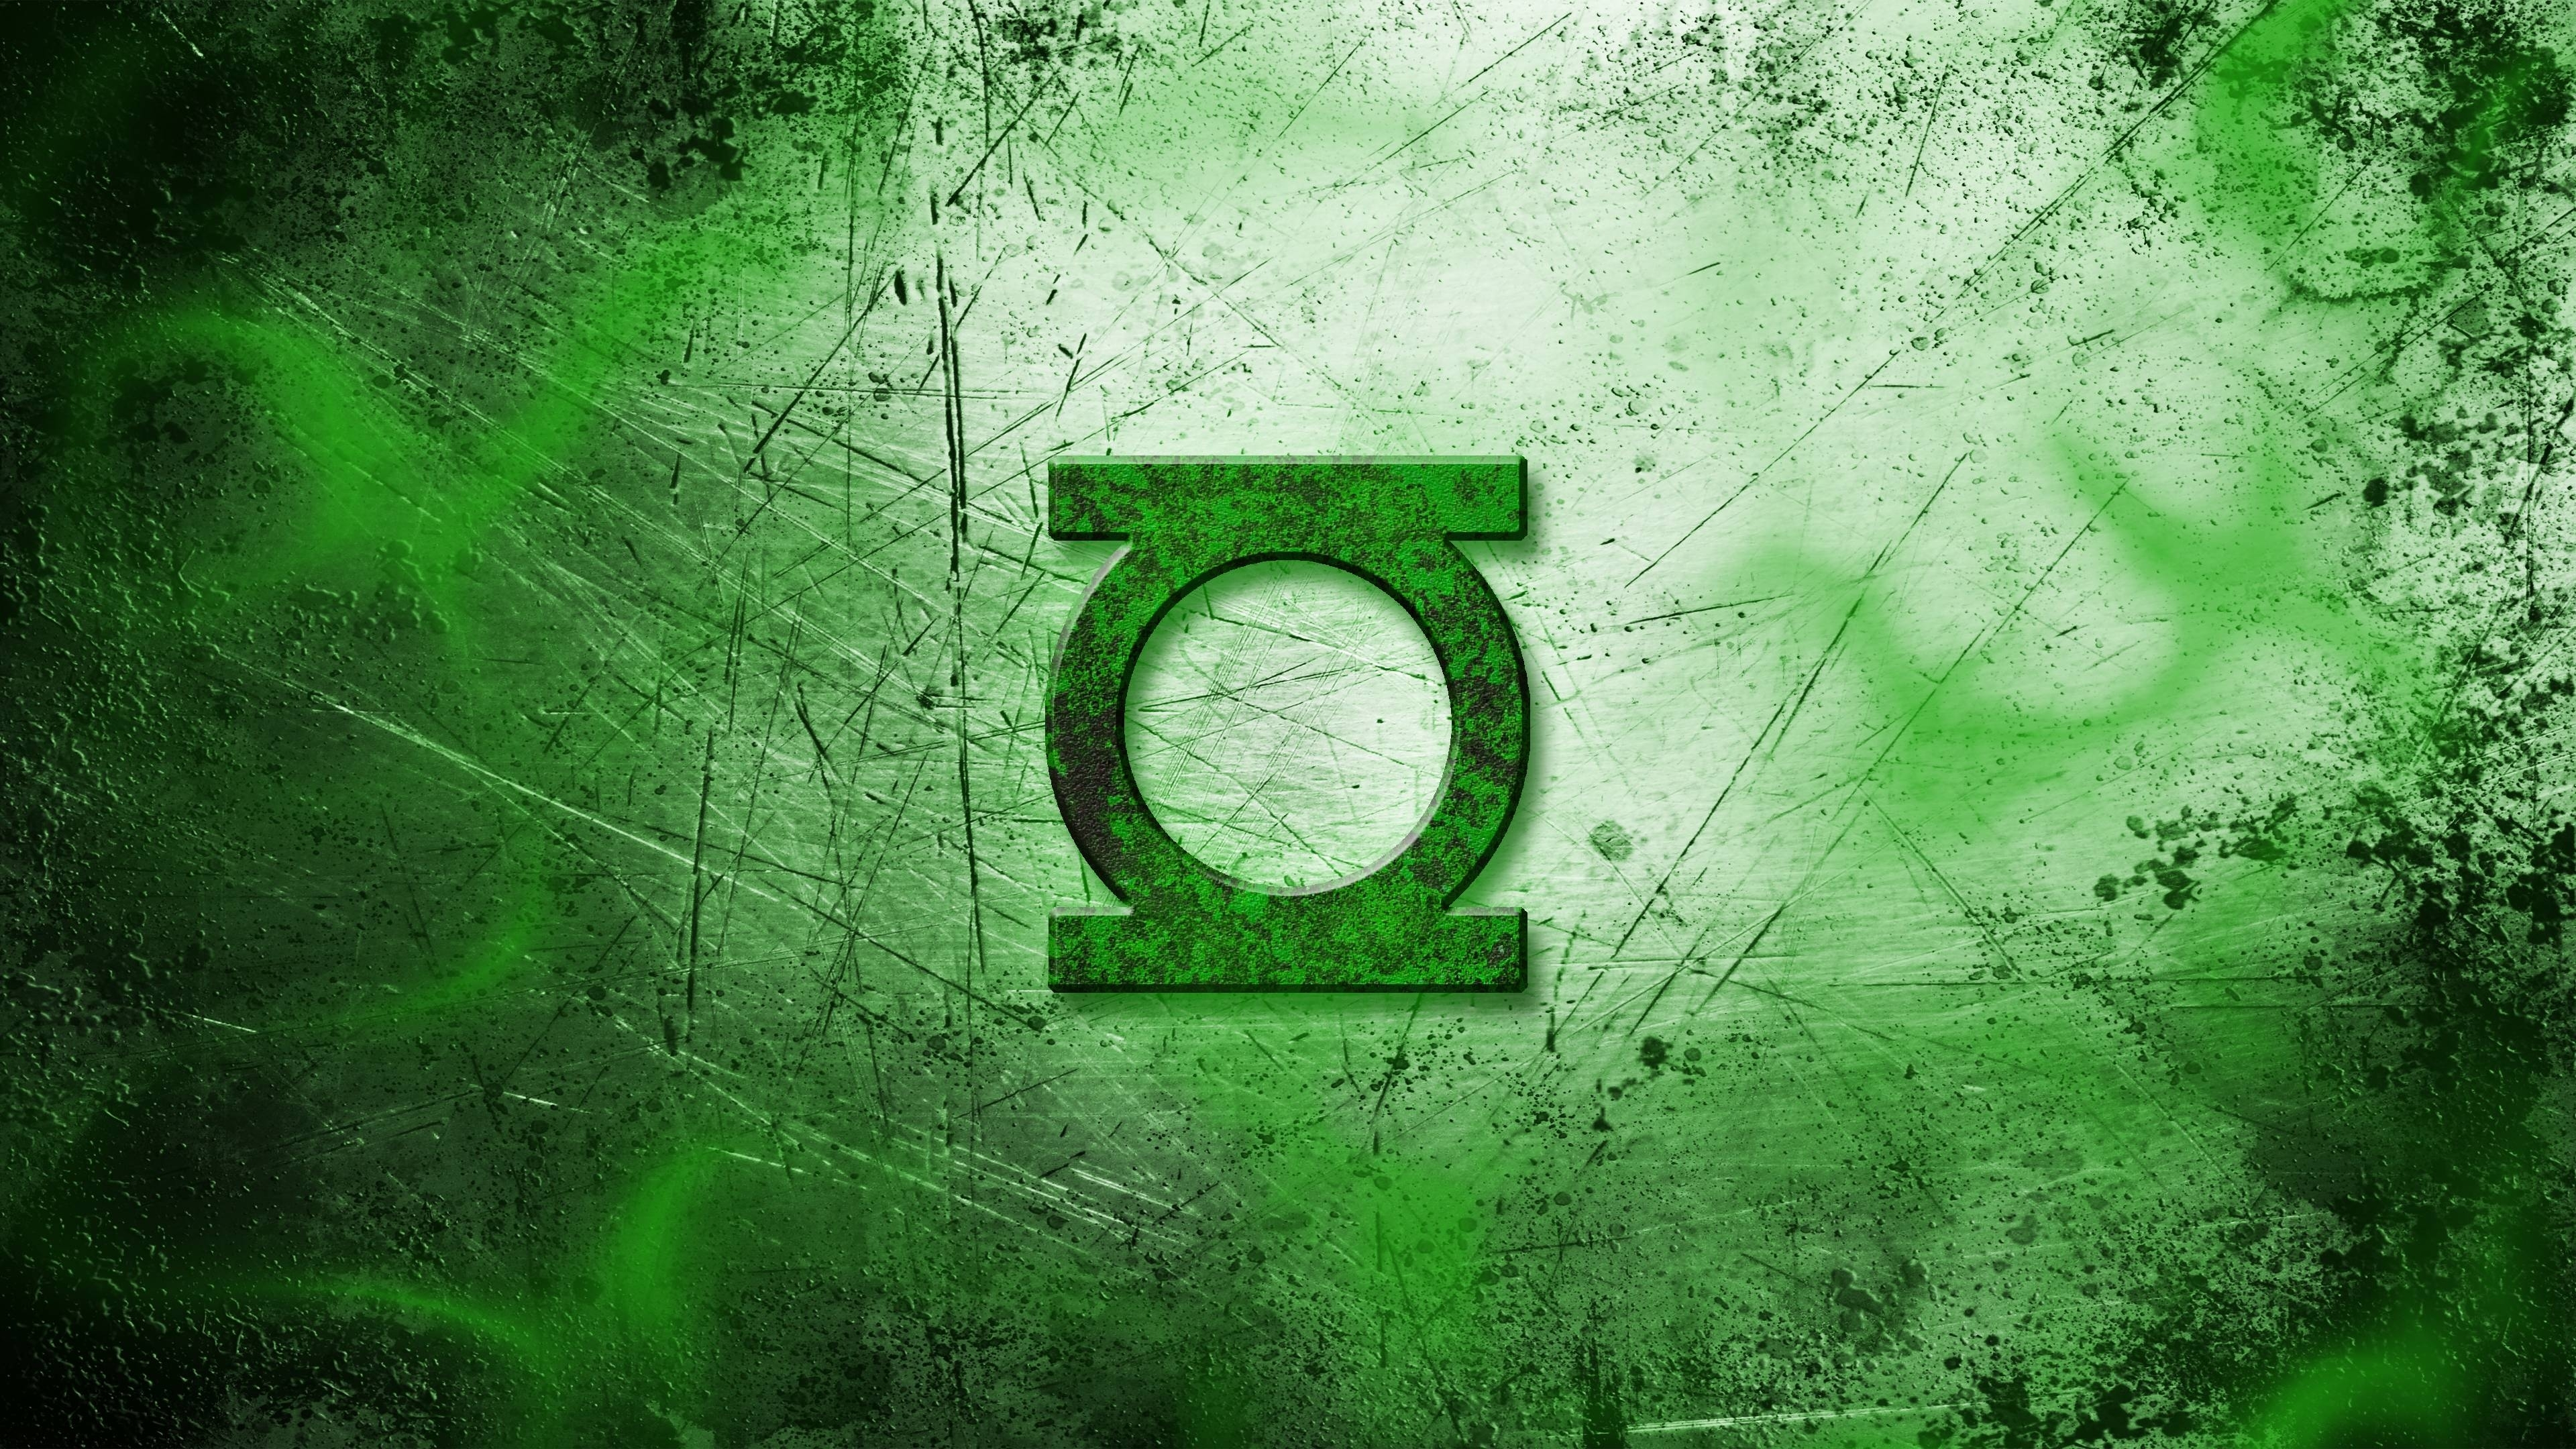 268 green lantern hd wallpapers | background images - wallpaper abyss